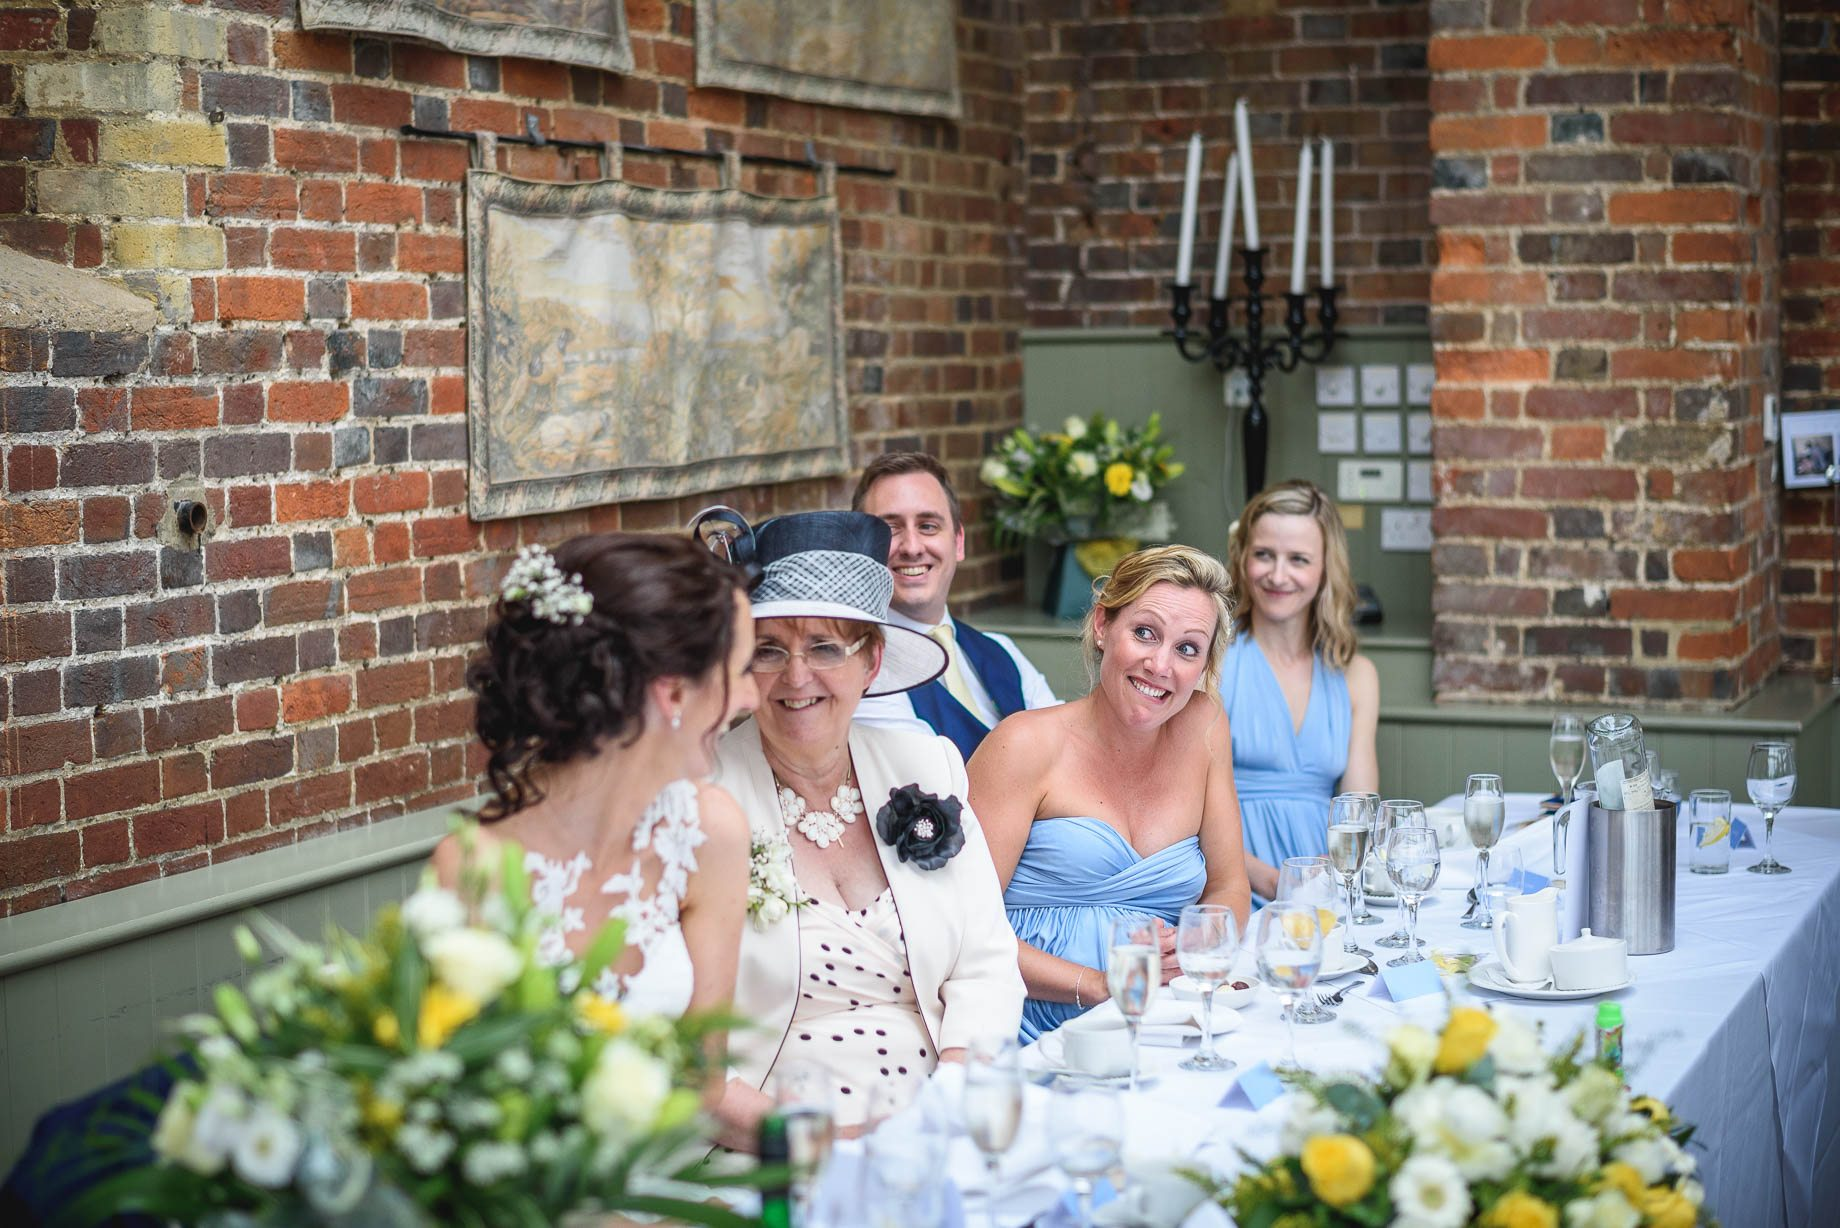 Hertfordshire wedding photography - Sarah and Stephen by Guy Collier Photography (125 of 161)